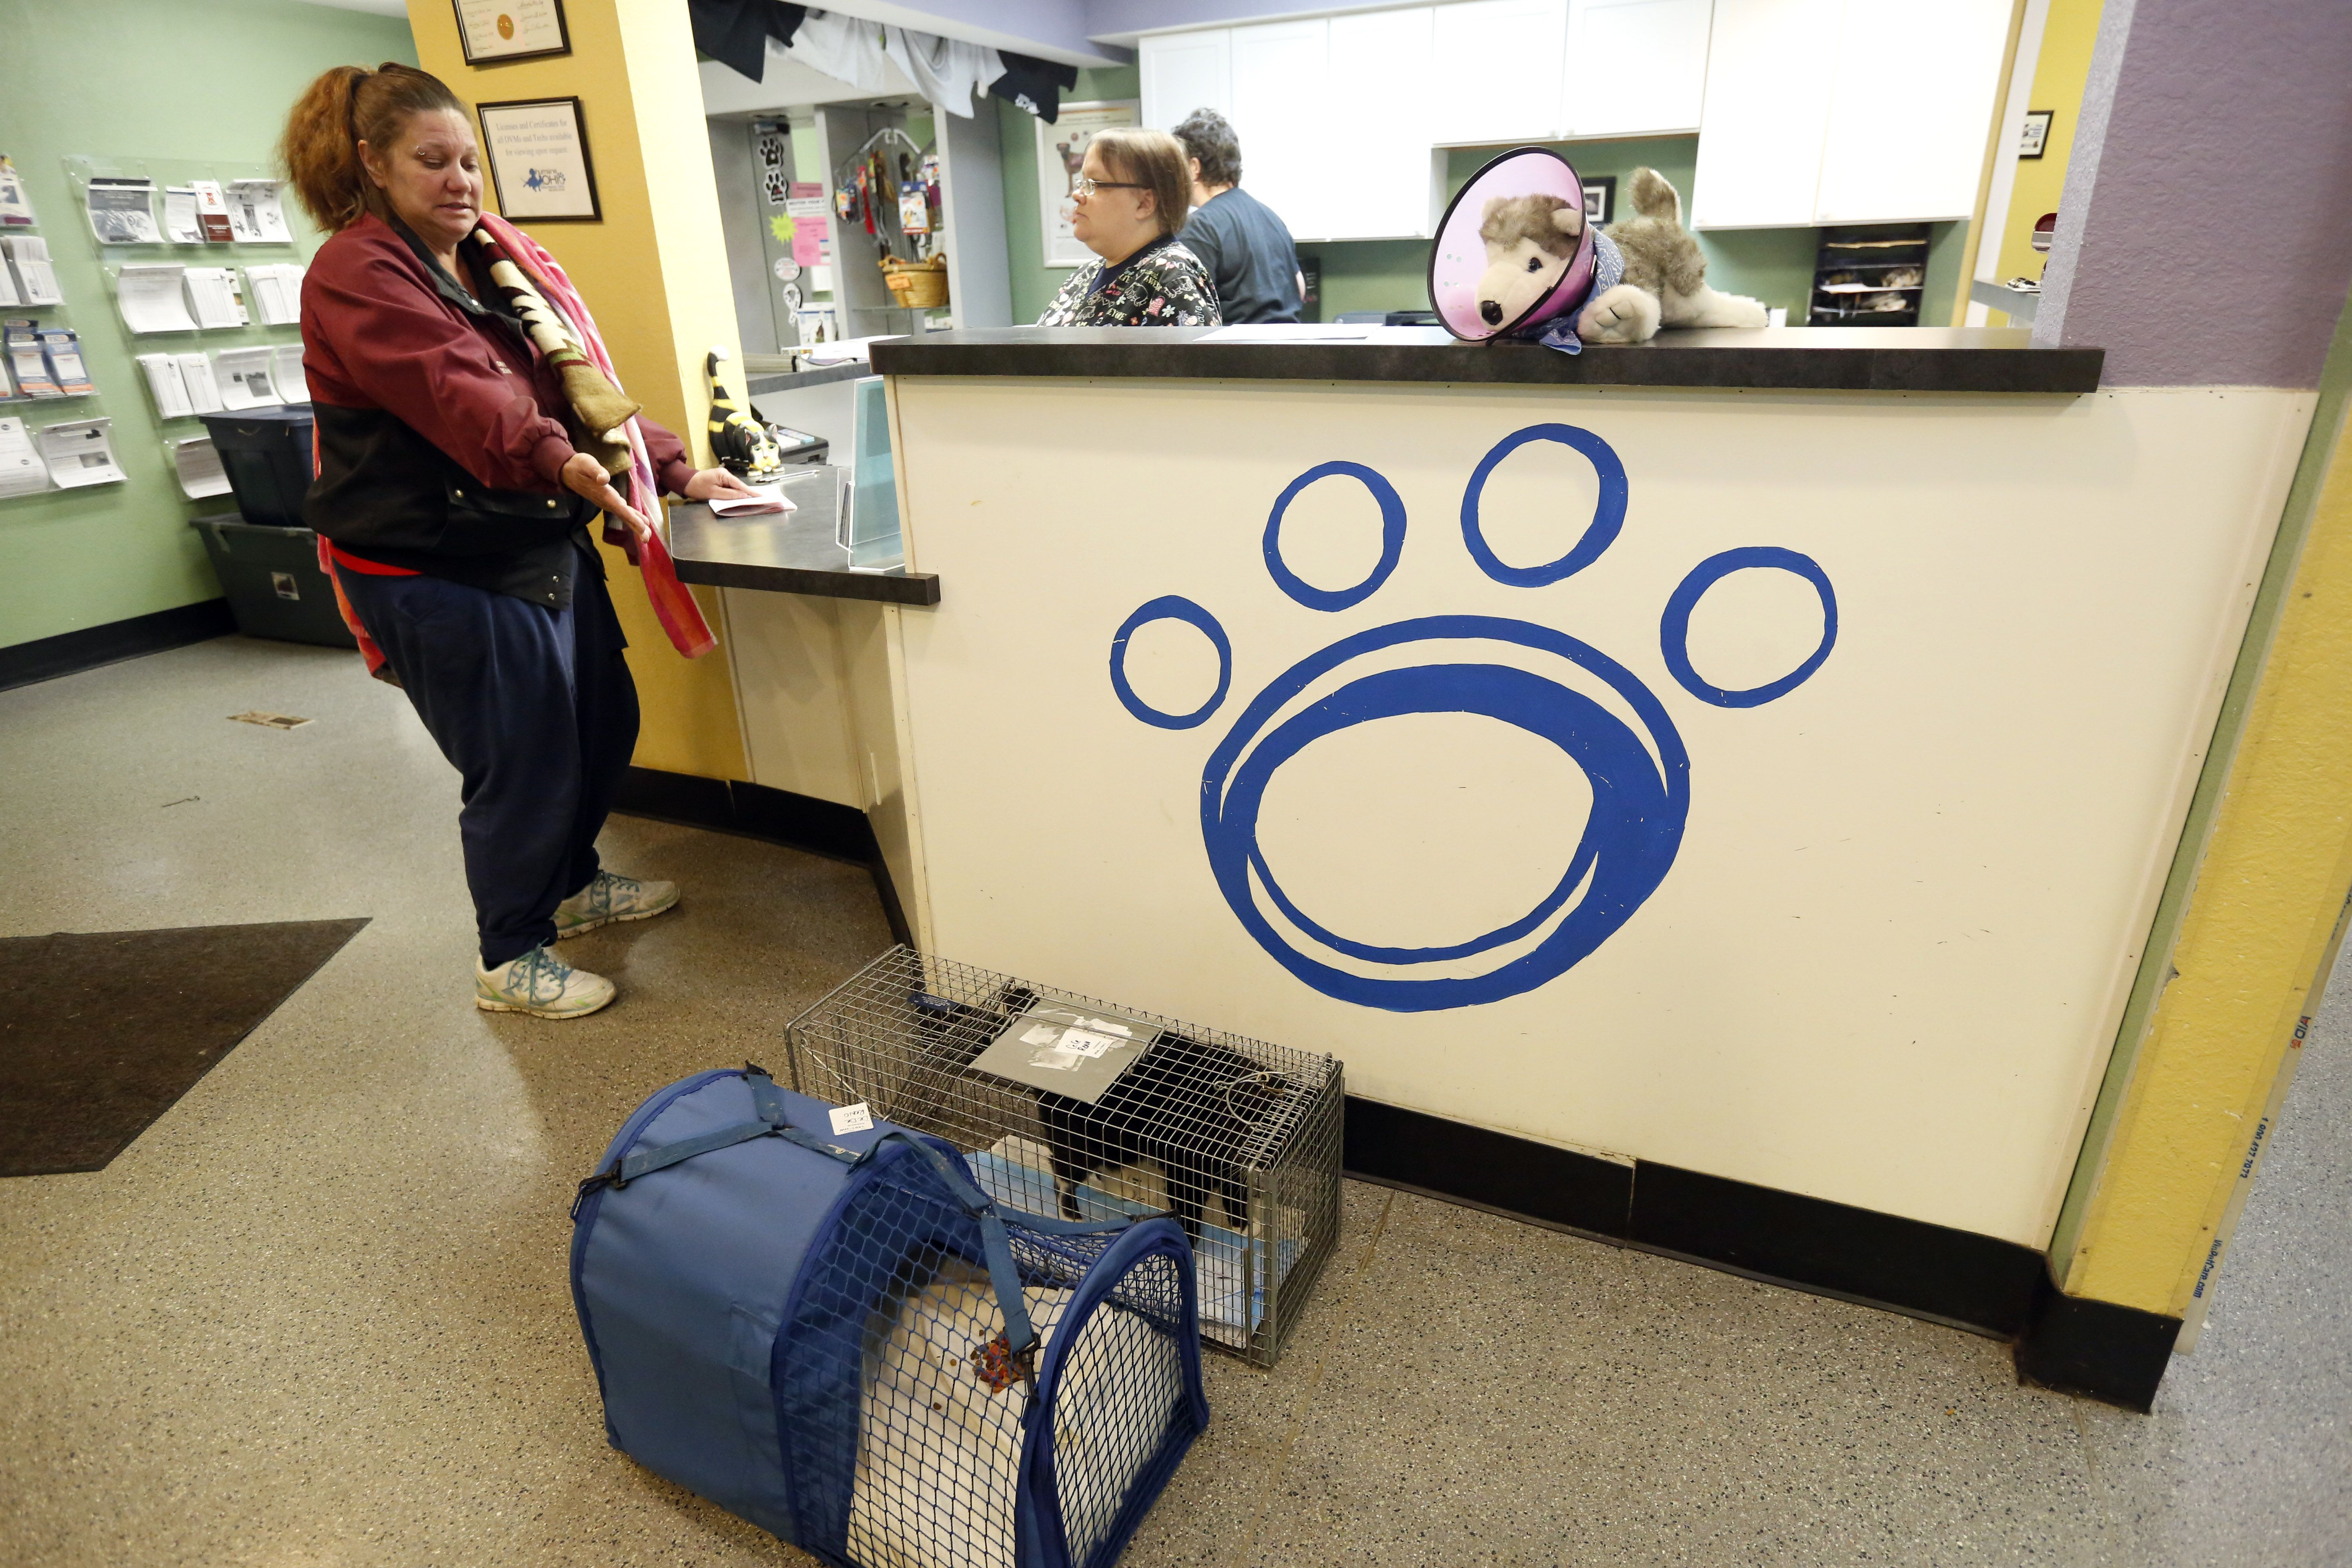 Humane Ohio offers sale on spaying cats  The spay/neuter clinic in West Toledo will spay owned female cats for $20 apiece in February and March, supported by a grant from PetSmart Charities.